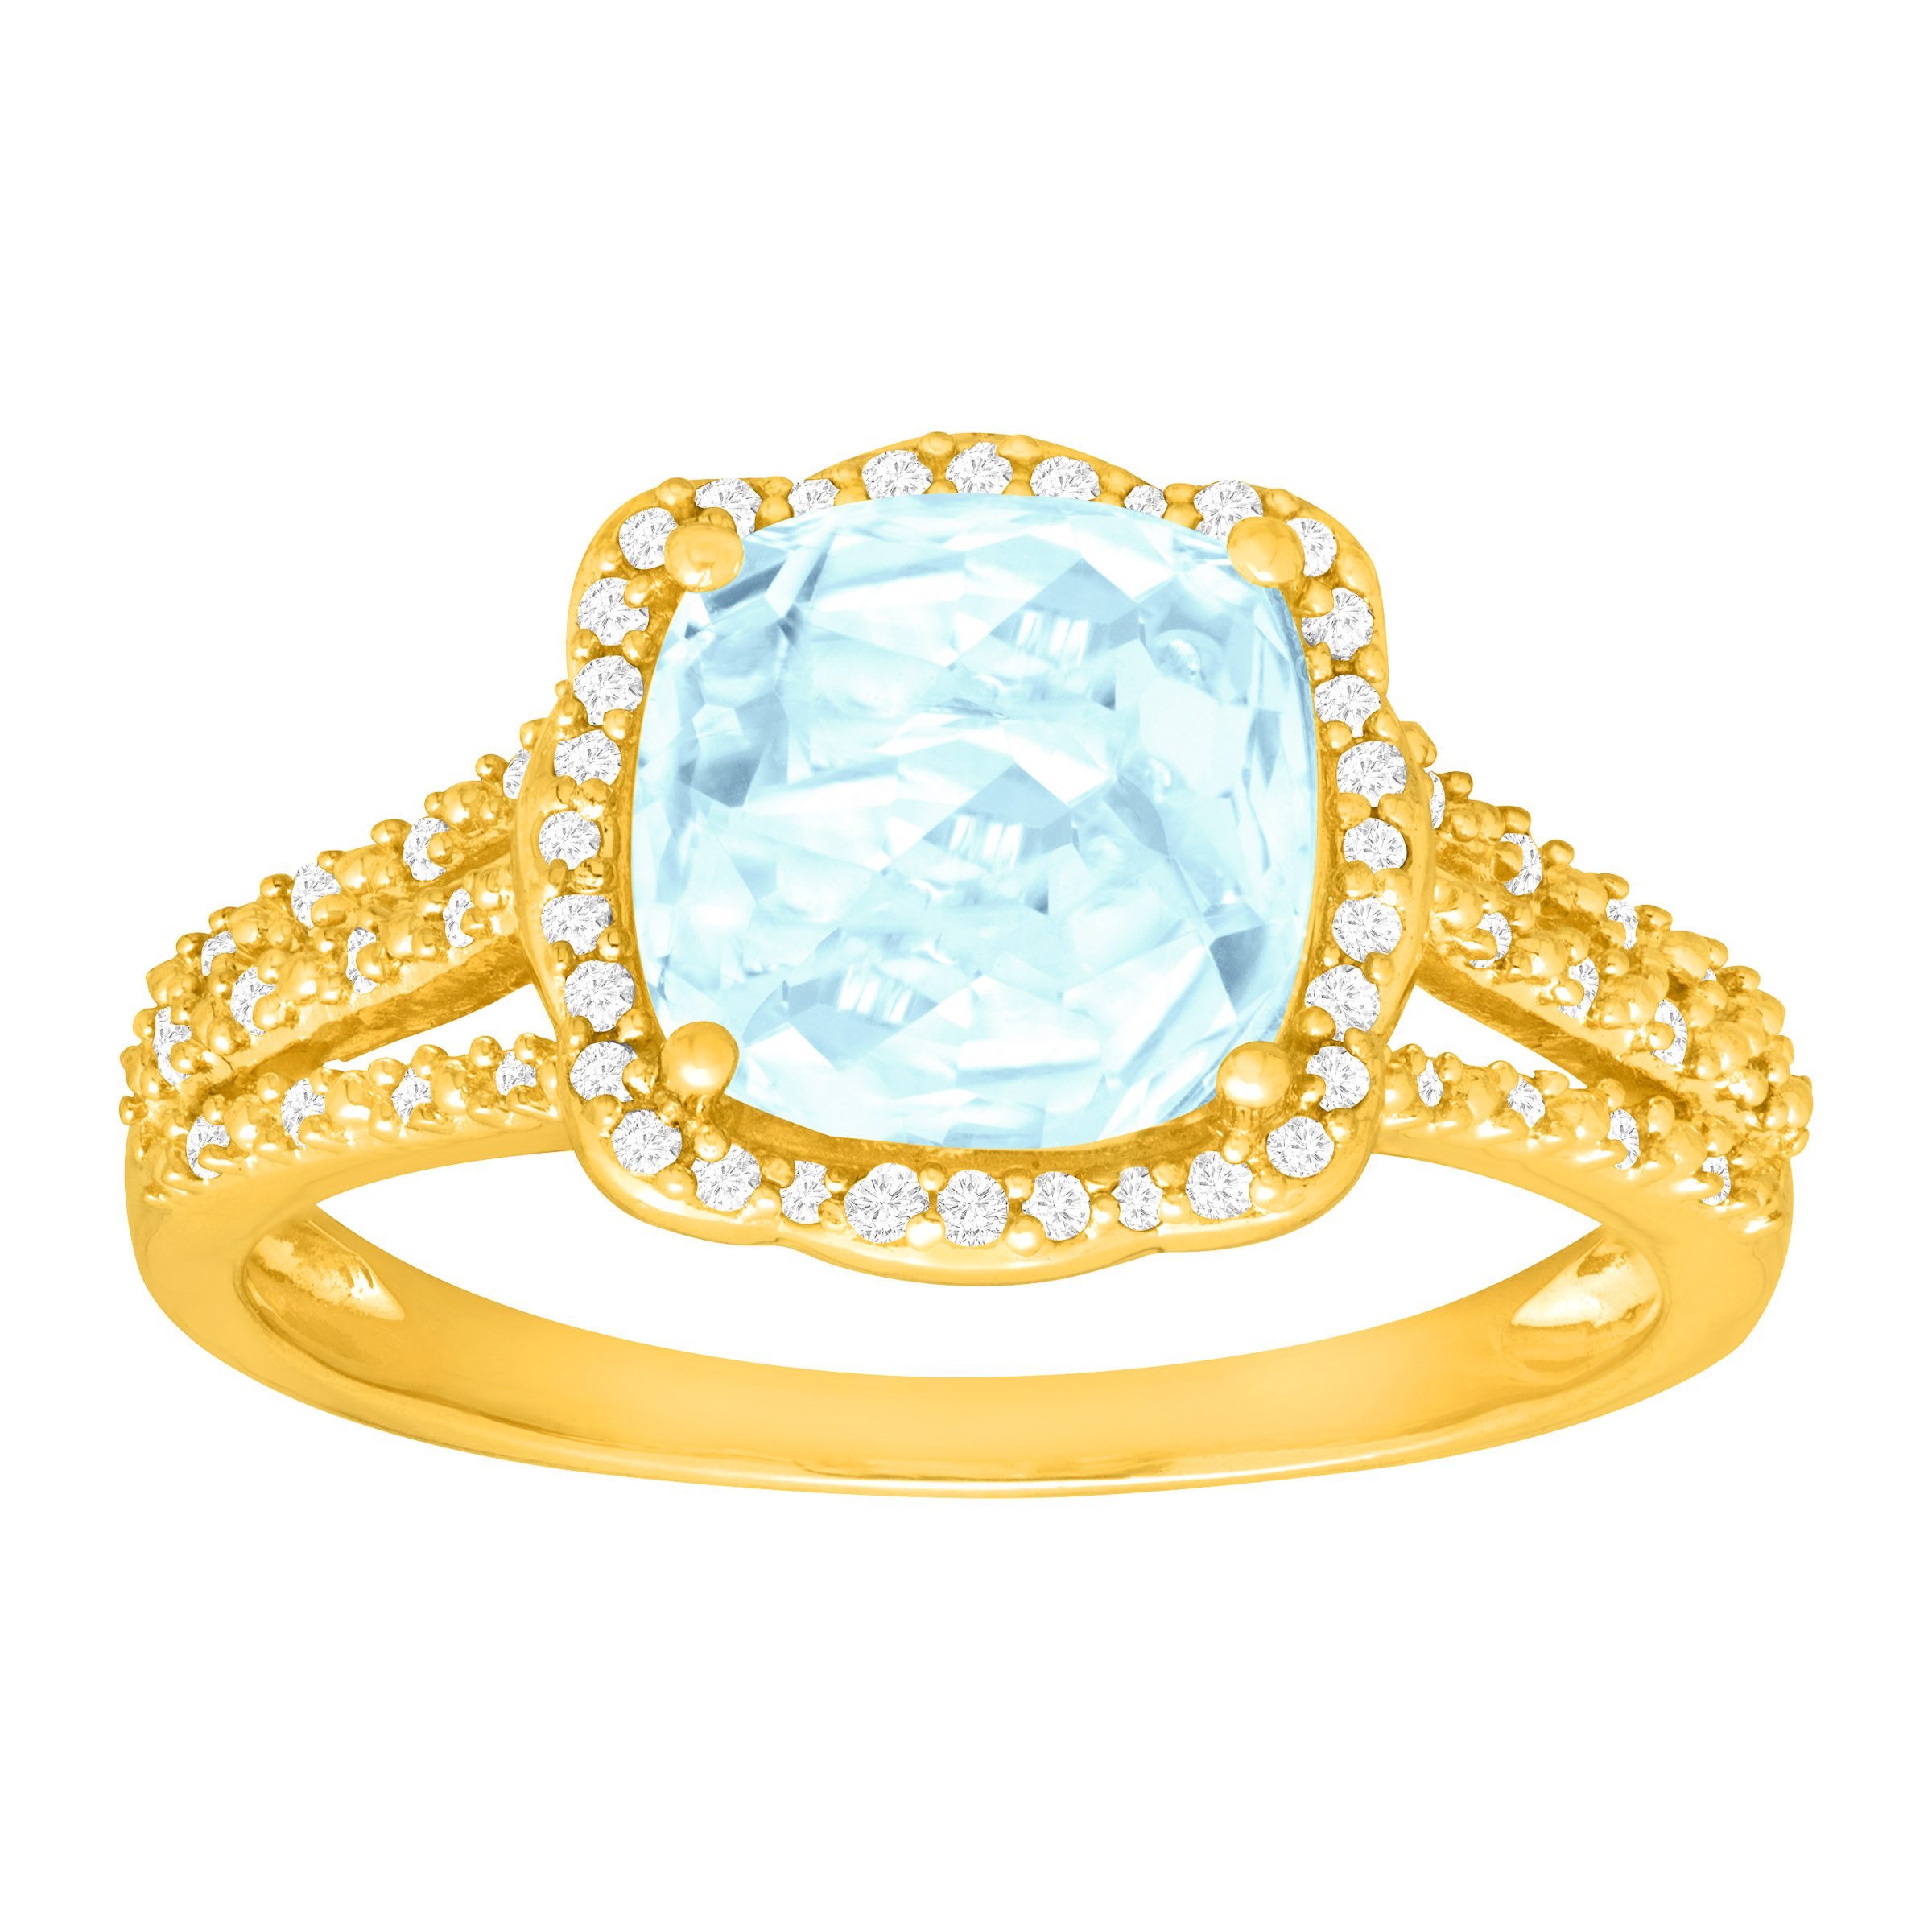 1 7 8 ct Natural Aquamarine & 1 6 ct Diamond Ring in 14kt Gold by Richline Group